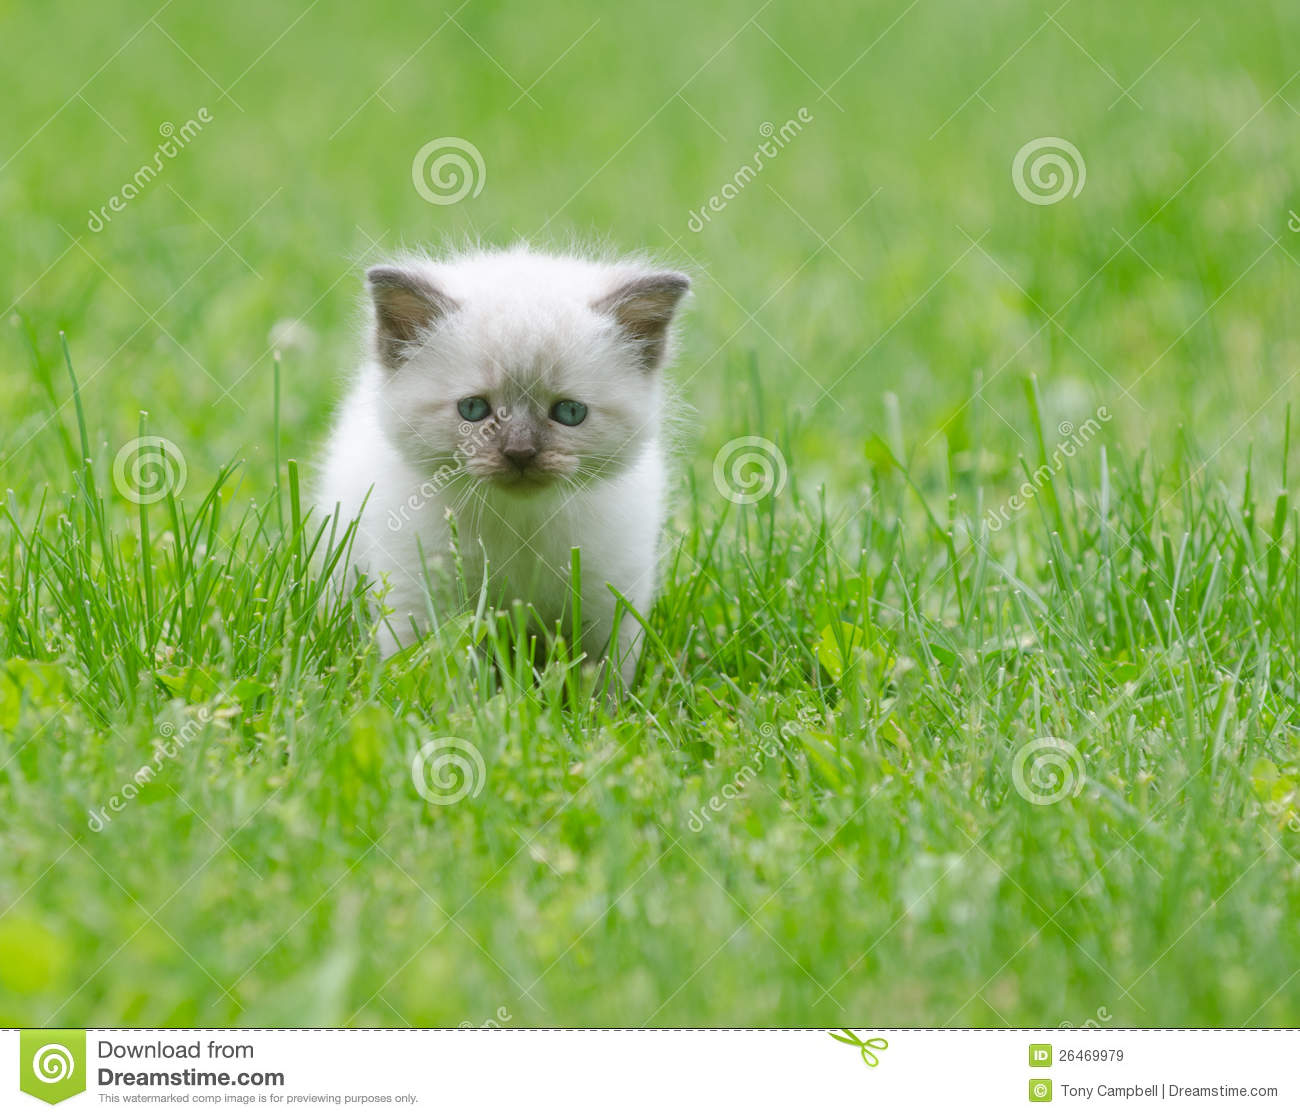 Cute Baby Kitten In The Grass Royalty Free Stock Images - Image ...